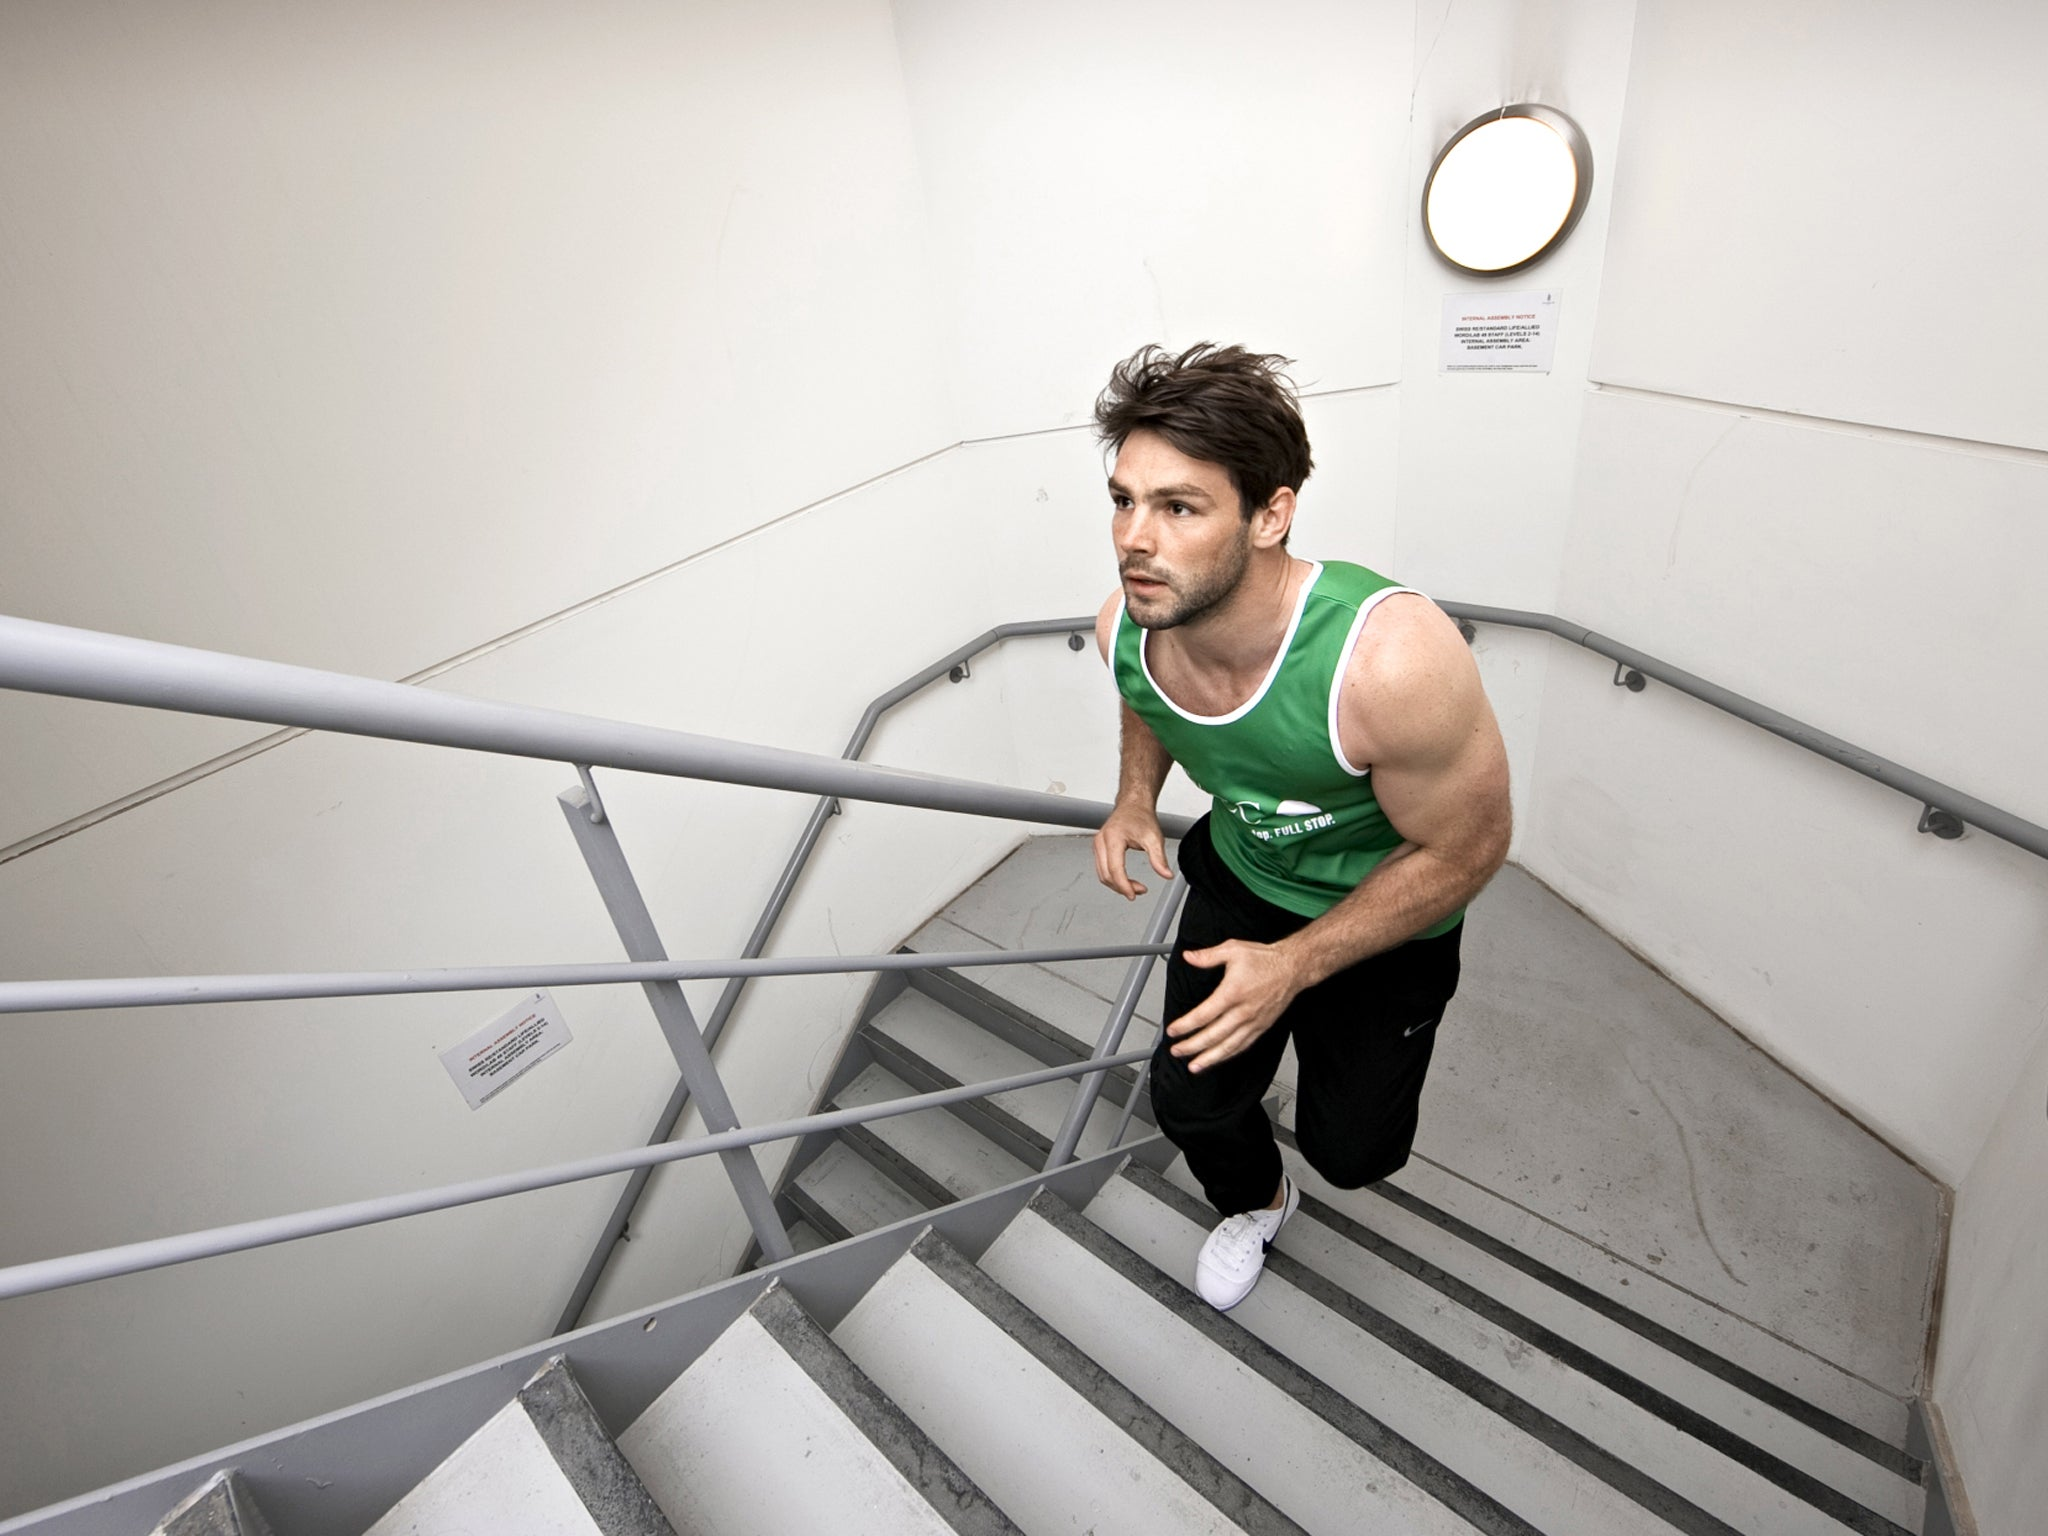 Stair-climbing: A step change in keeping fit | Features ...